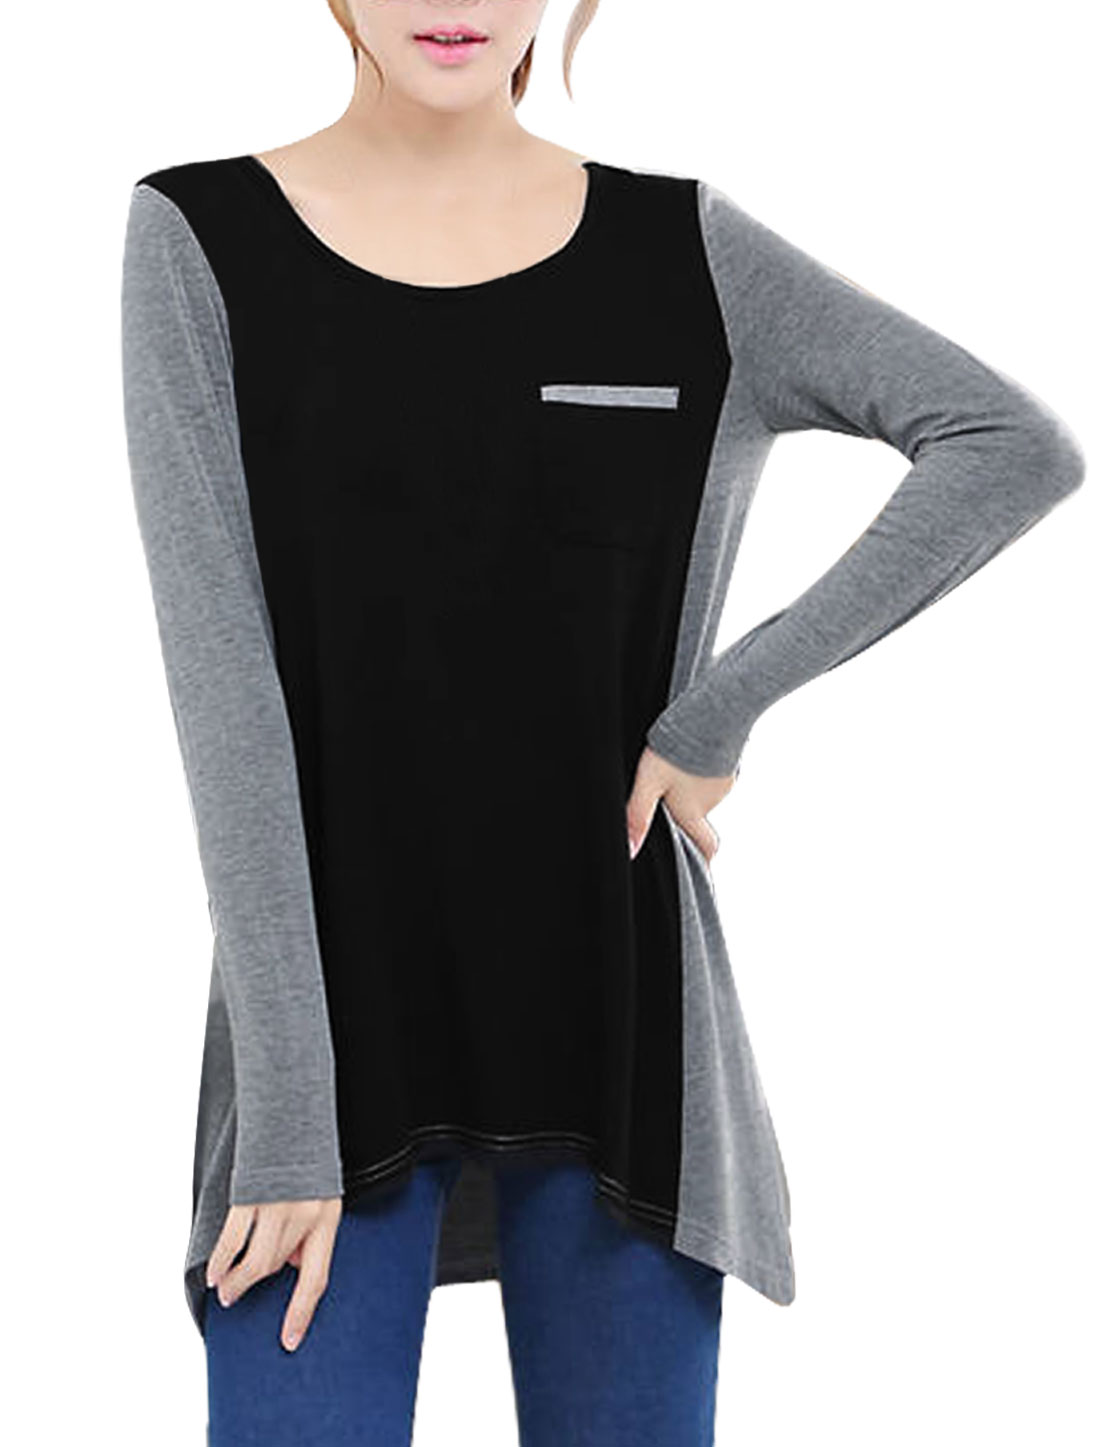 Spliced Design Casual Soft Irregular Hem Black Gray Shirt For Lady S